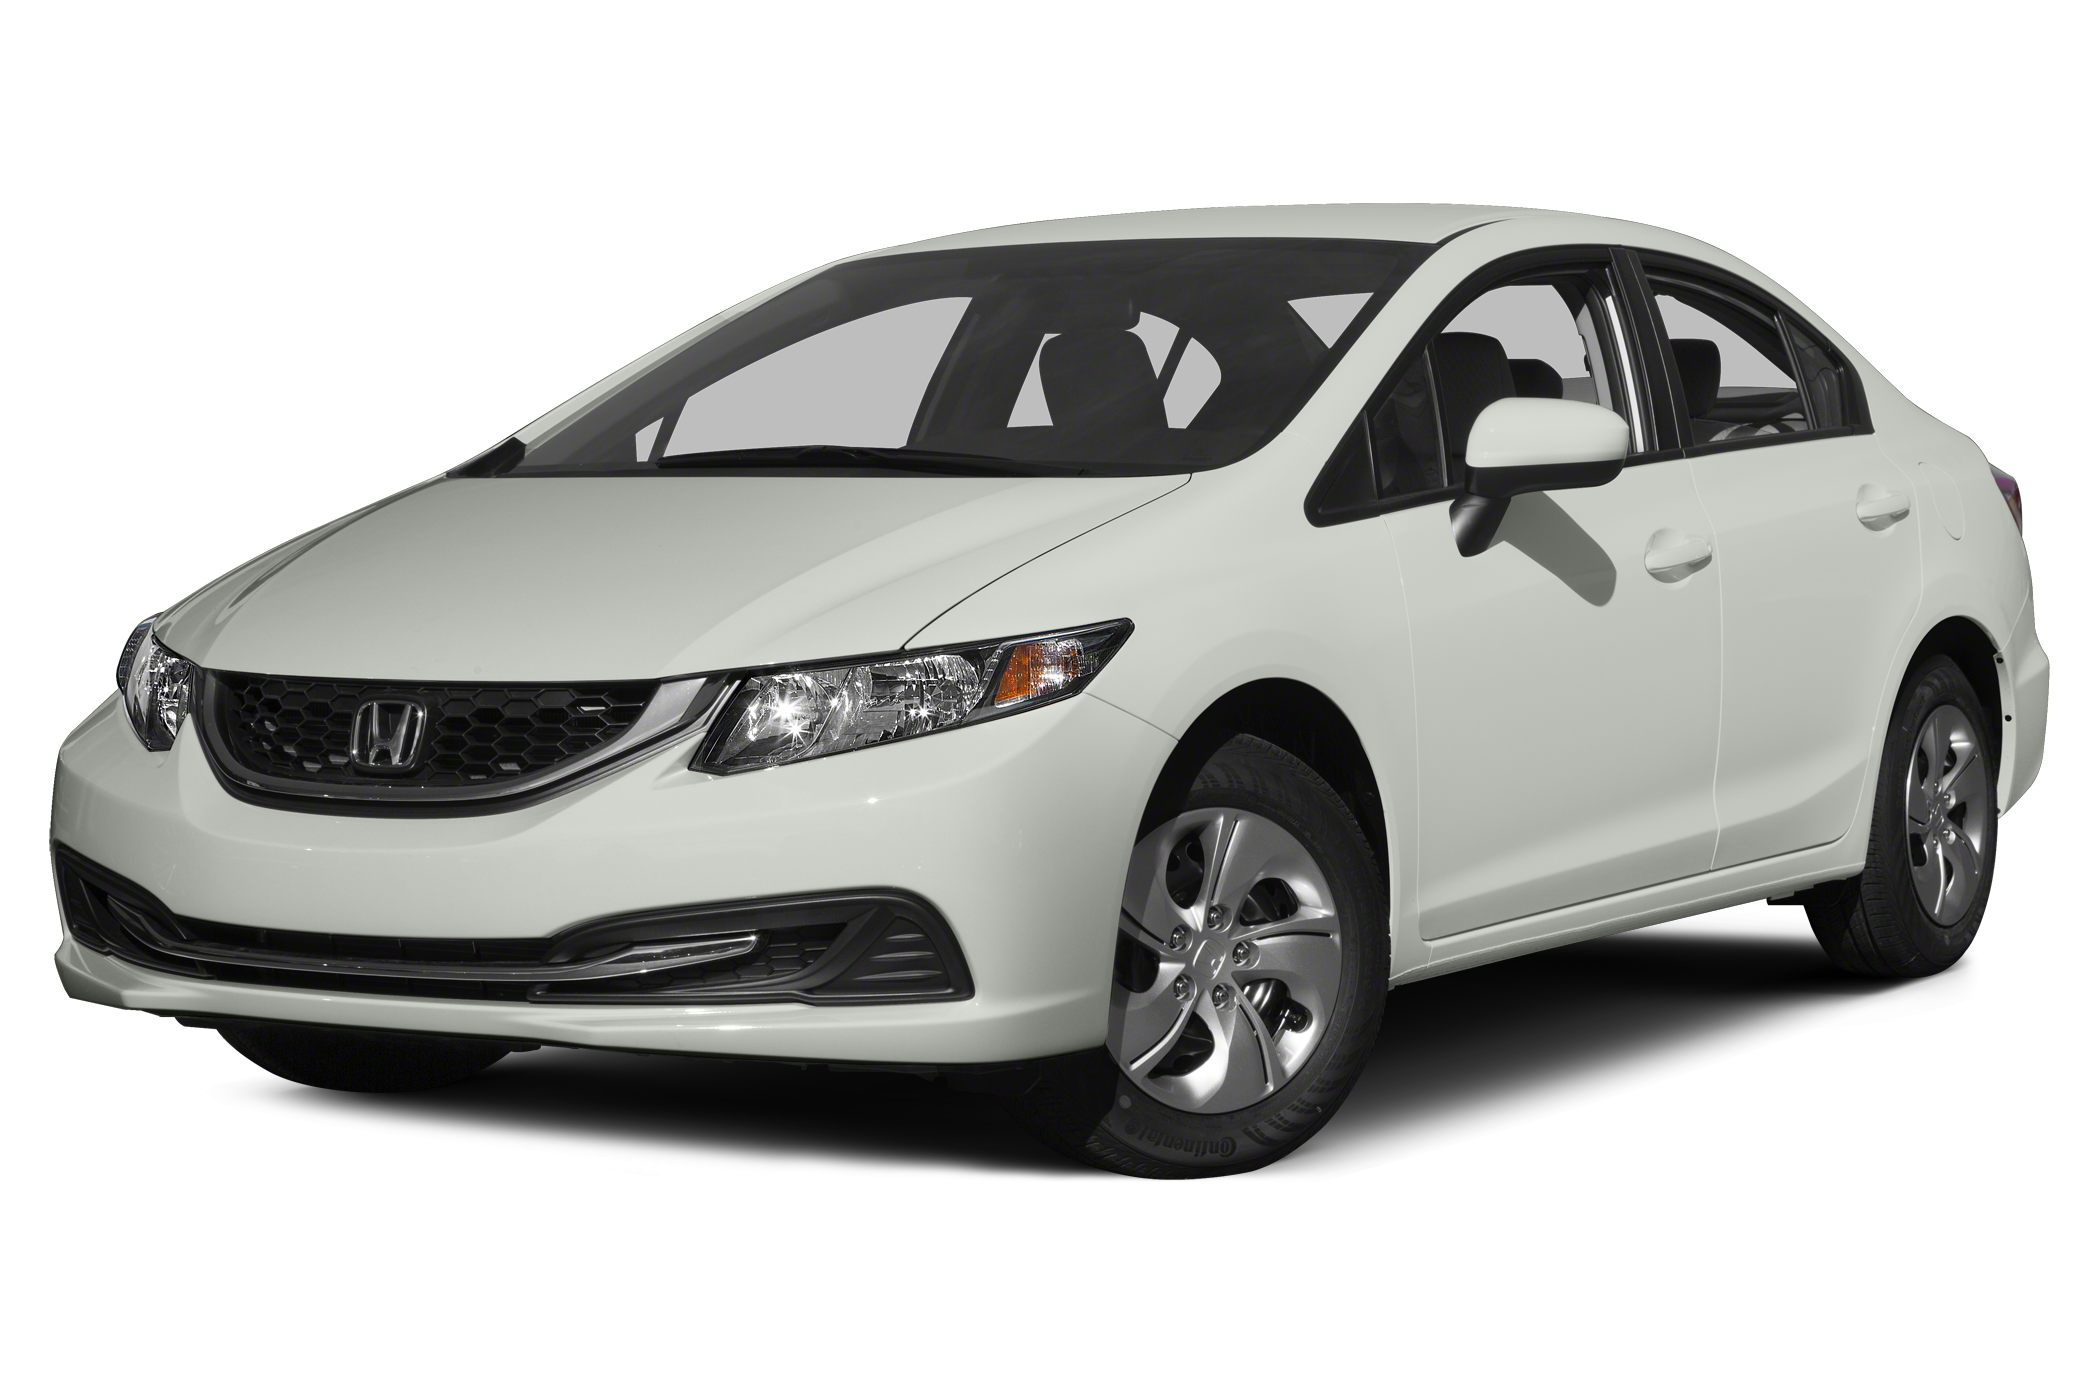 2015 Honda Civic LX Civic LX 4D Sedan CVT FWD Crystal Black Pearl and Black Cloth Dont let